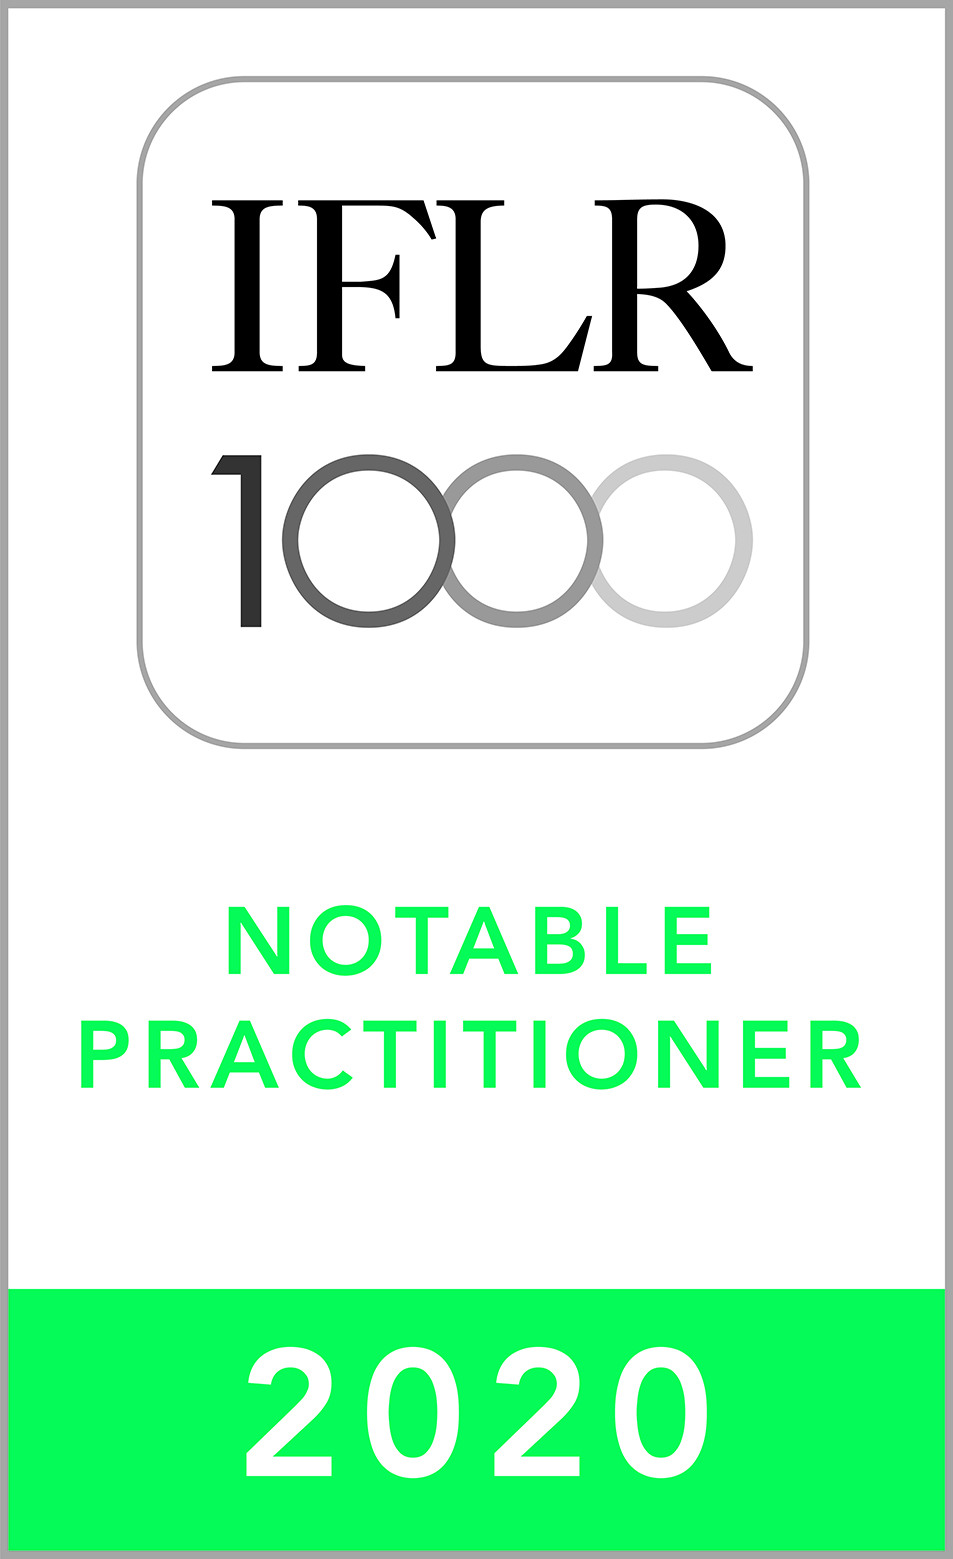 IFLR Notable Practitioner 2020